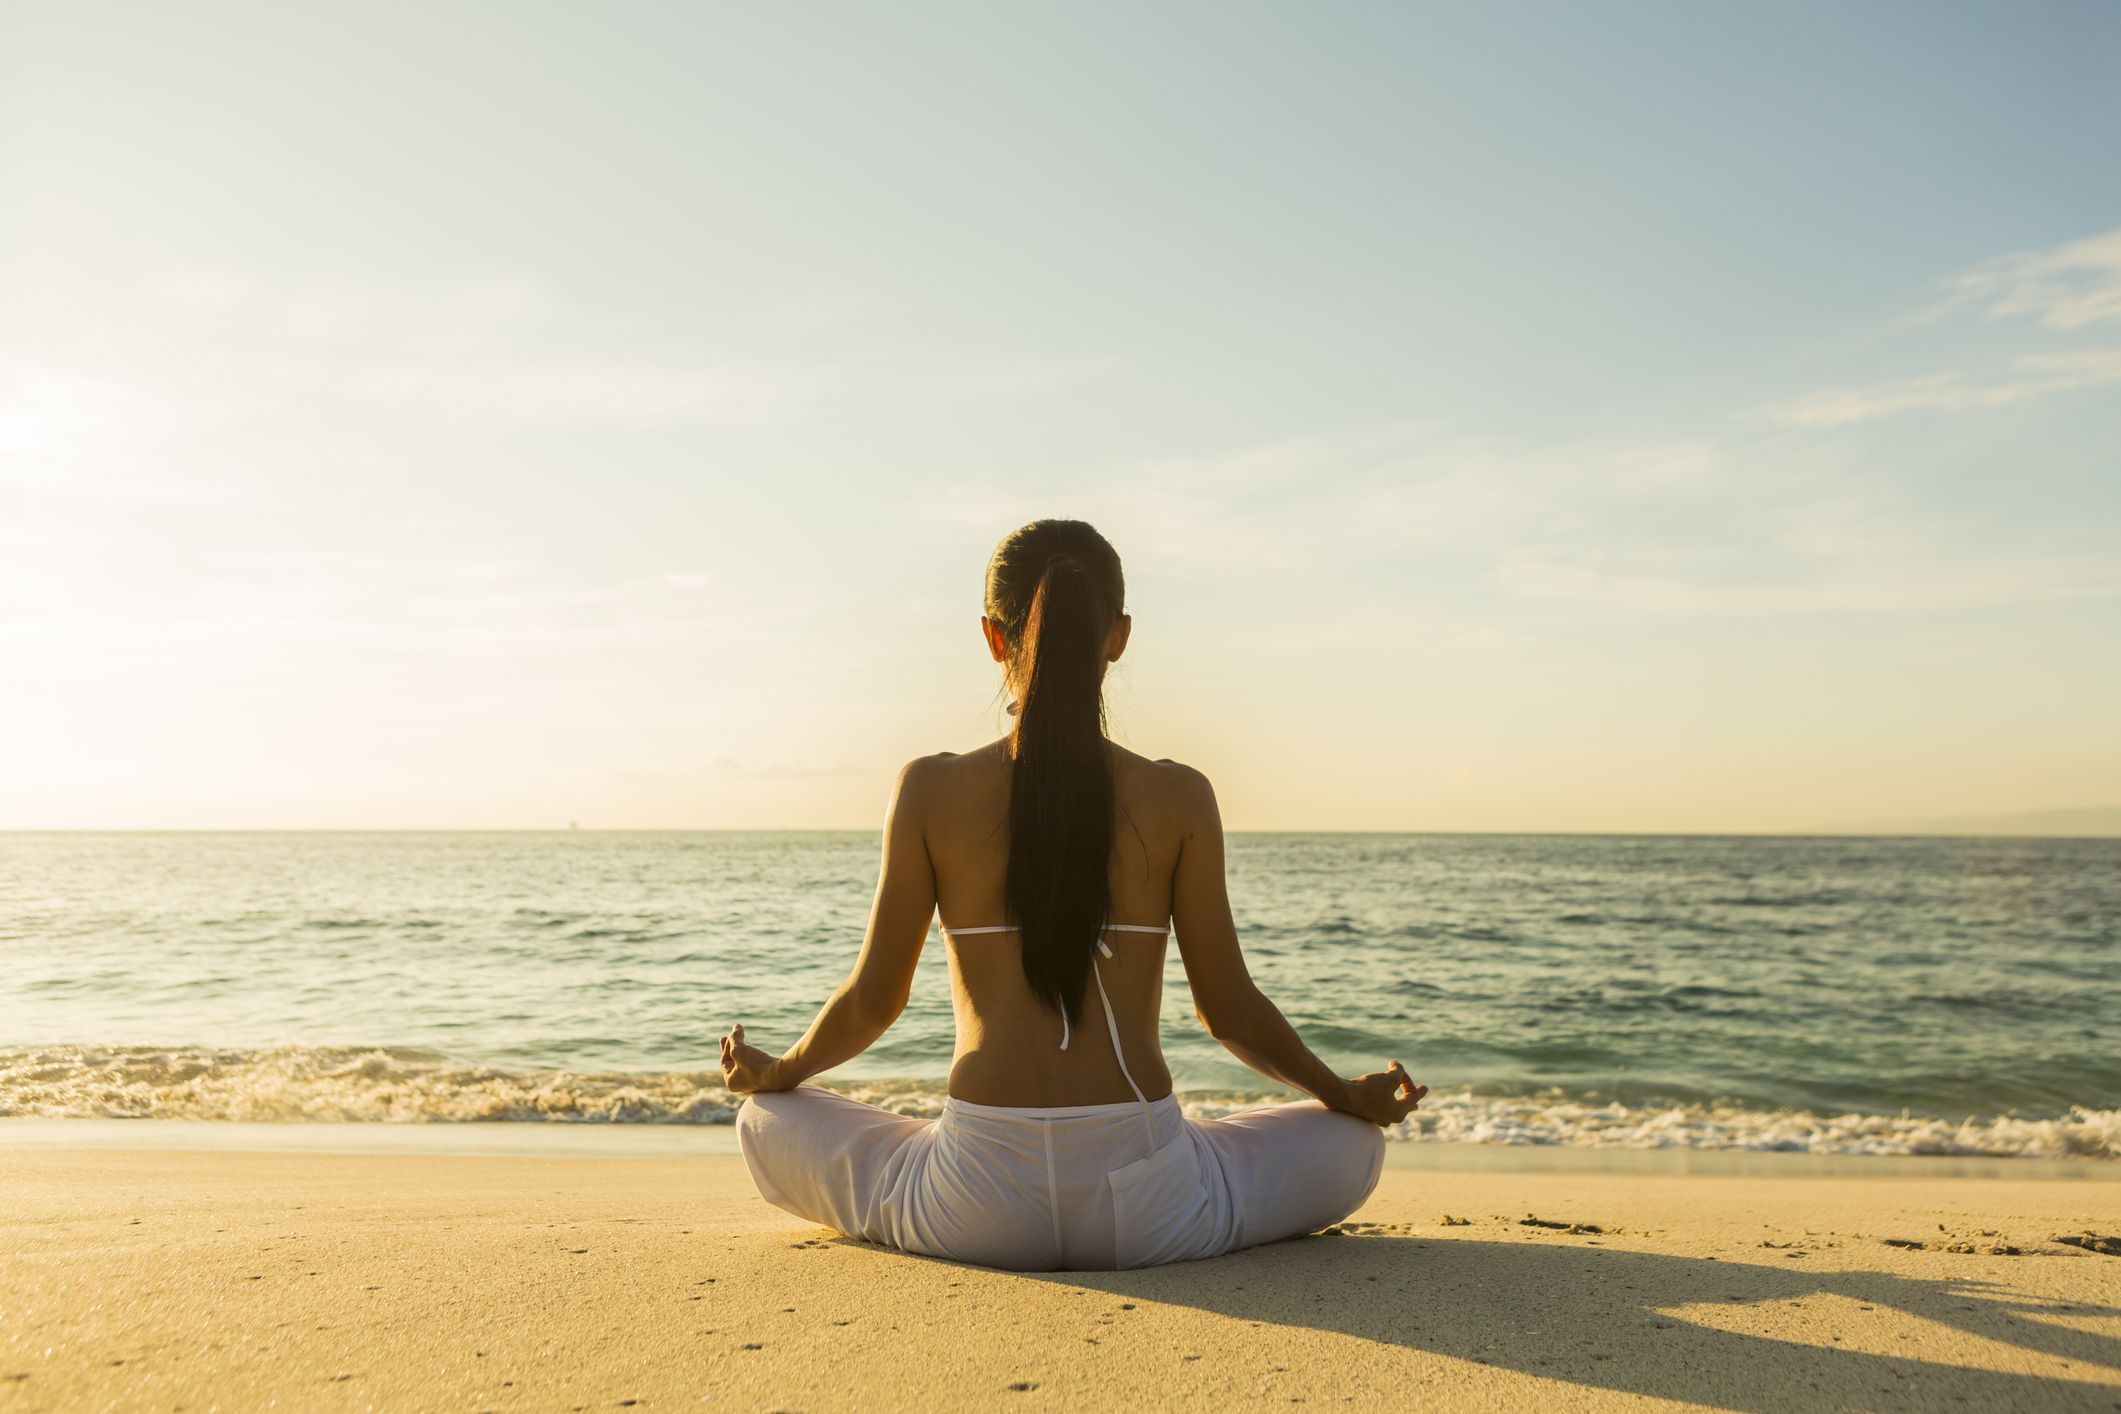 mindfulness and meditation as a treatment Mindfulness meditation, anxiety reduction, and heart disease meditation mindfulness encourages de- tached, non-judging observation or wit.